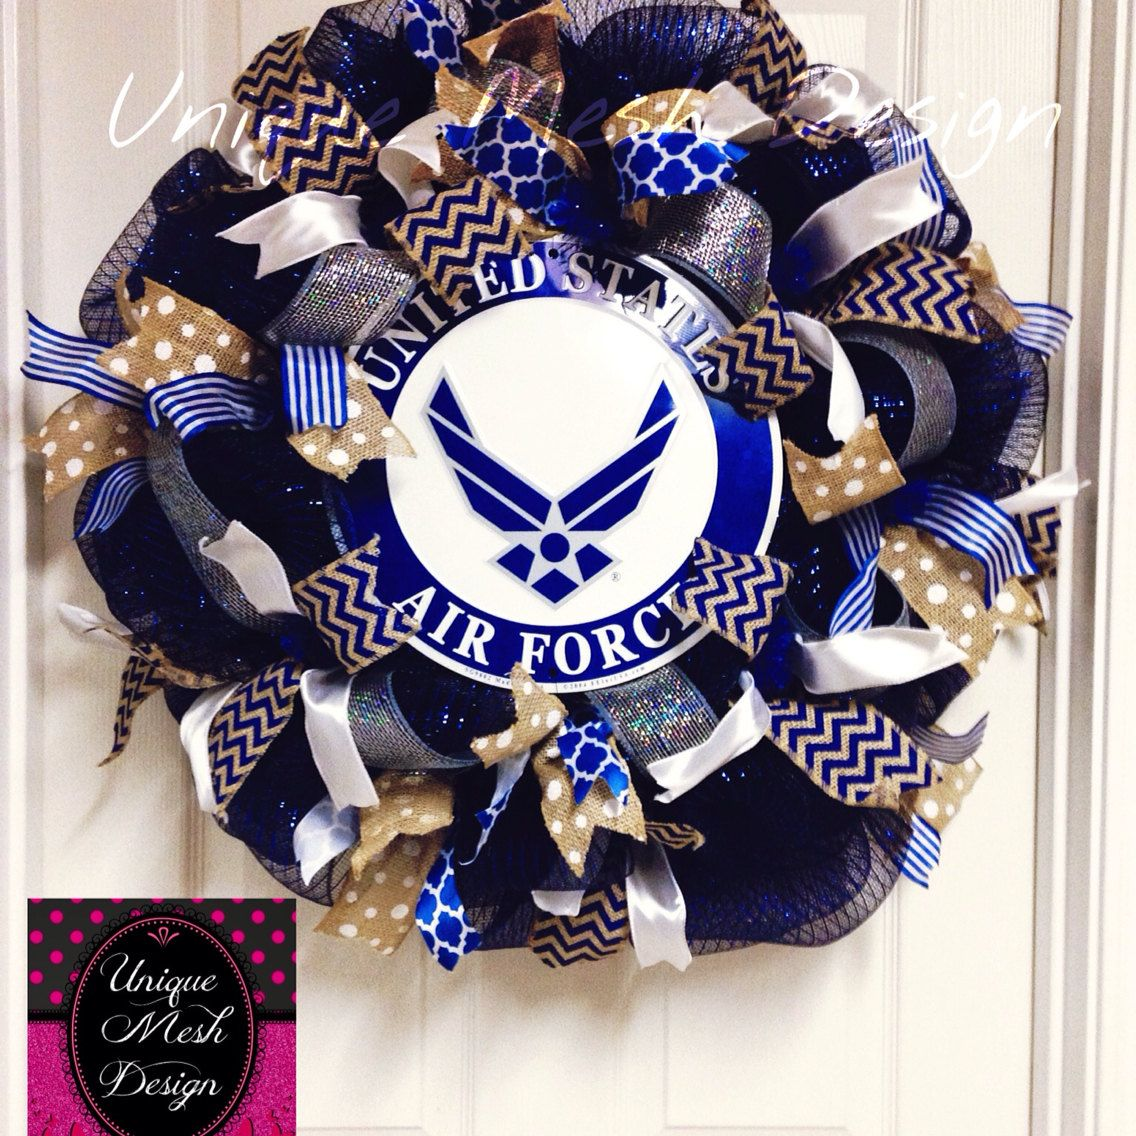 Us air force mesh wreath air force wreath military wreath for Air force decoration